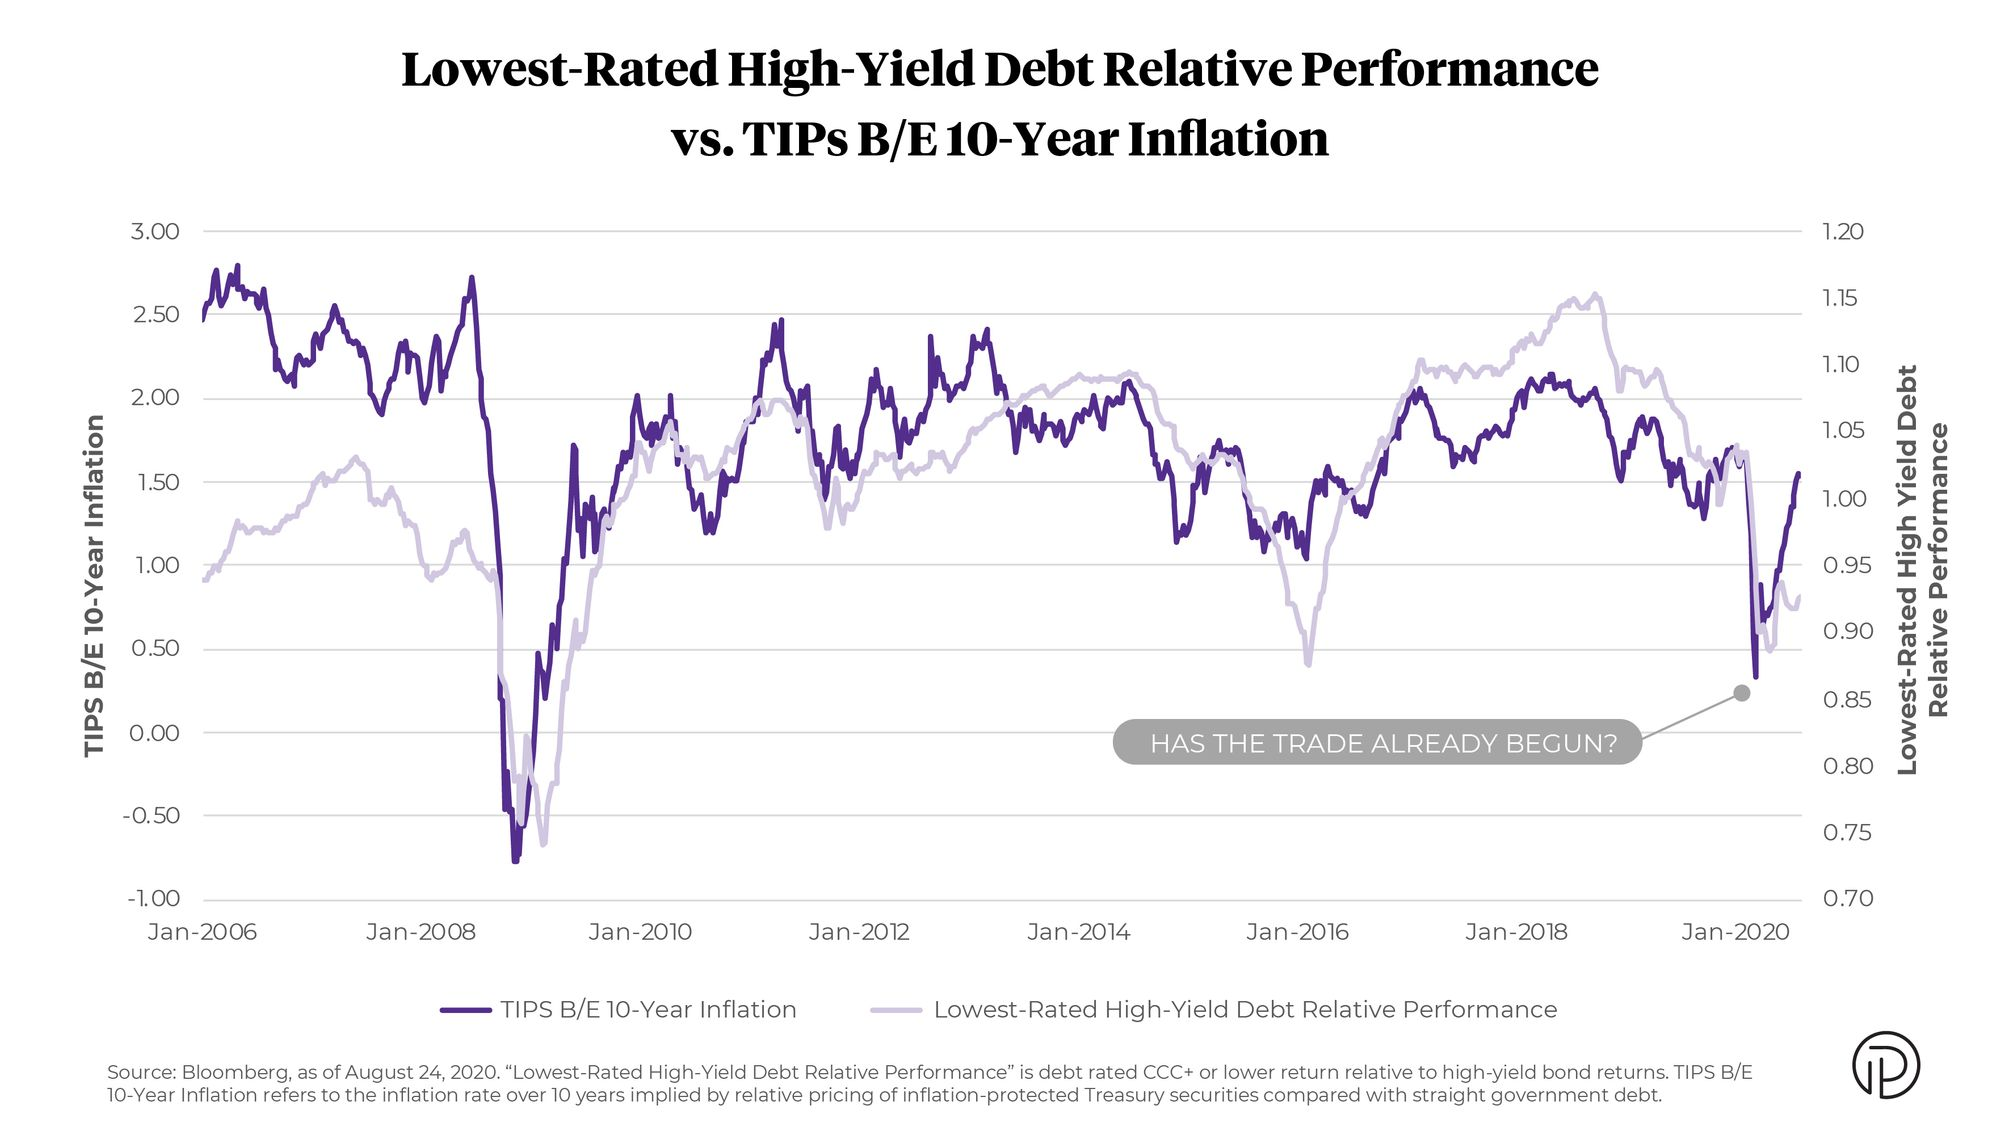 Lowest-Rated High-Yield Debt Performance versus TIPs B/E 10 Year Inflation